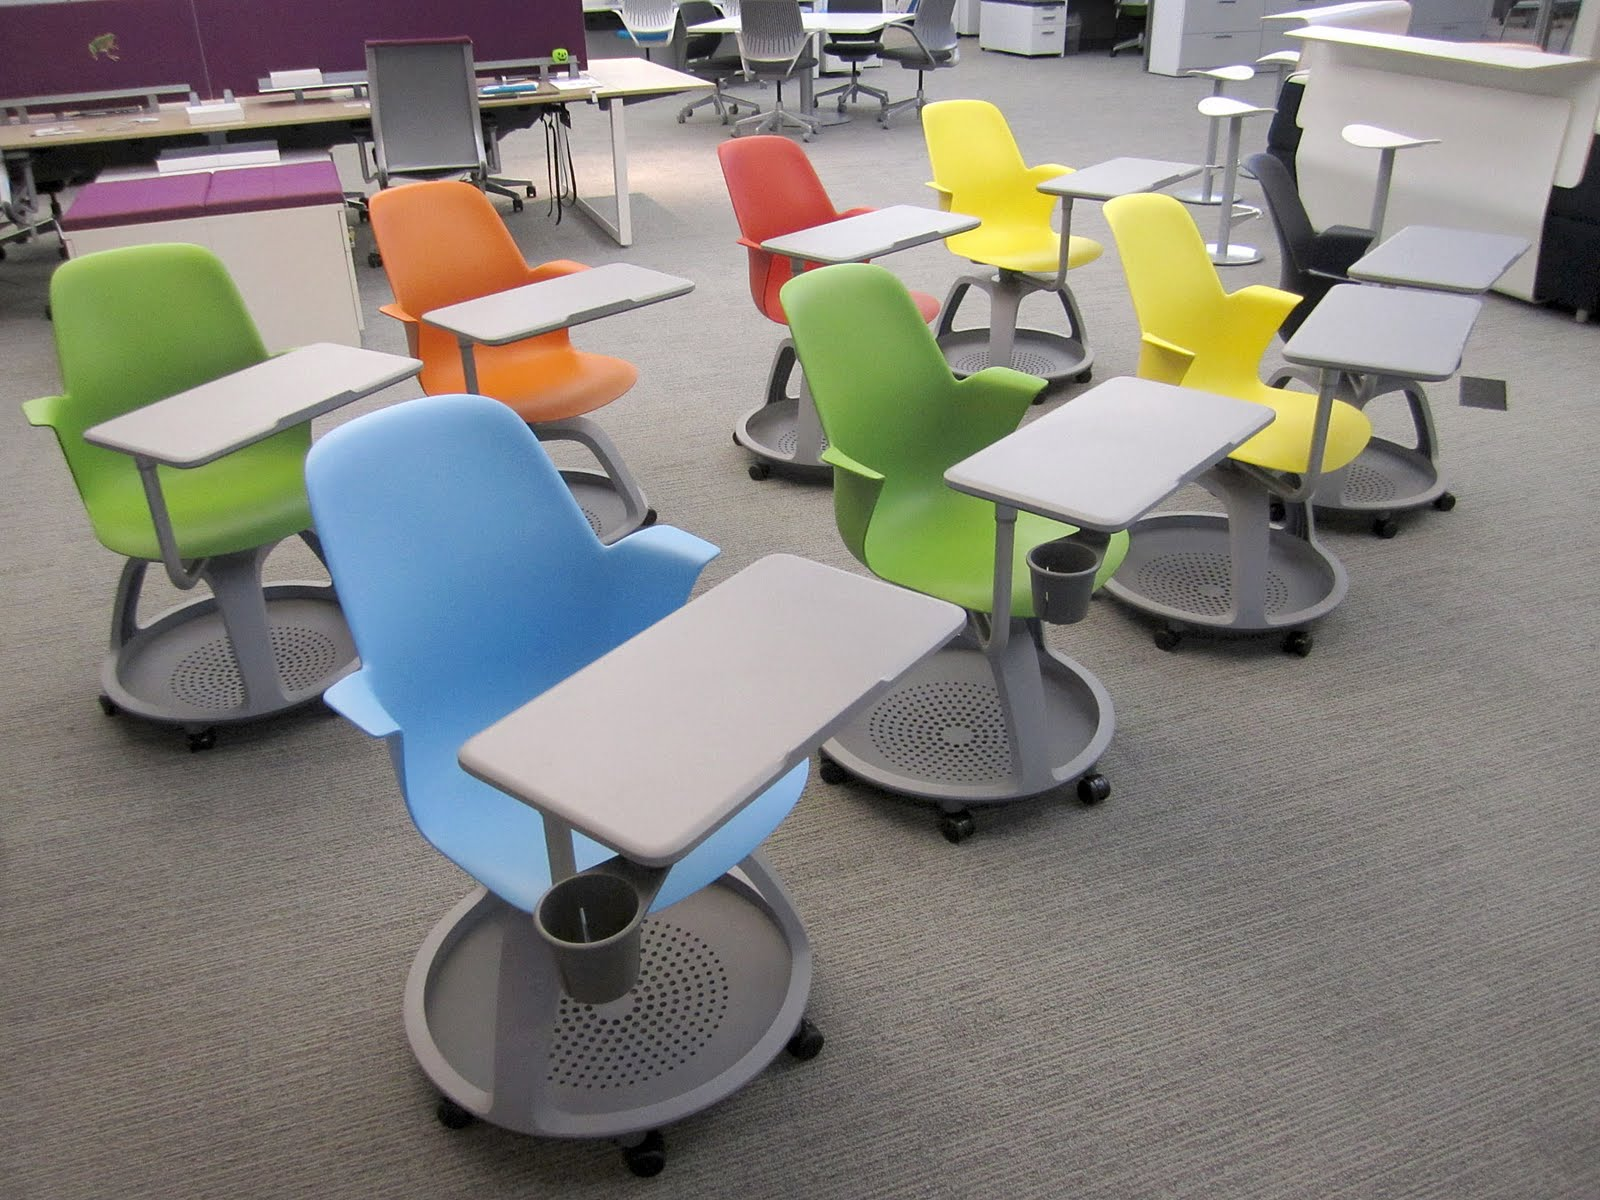 The learning space learning spaces by design